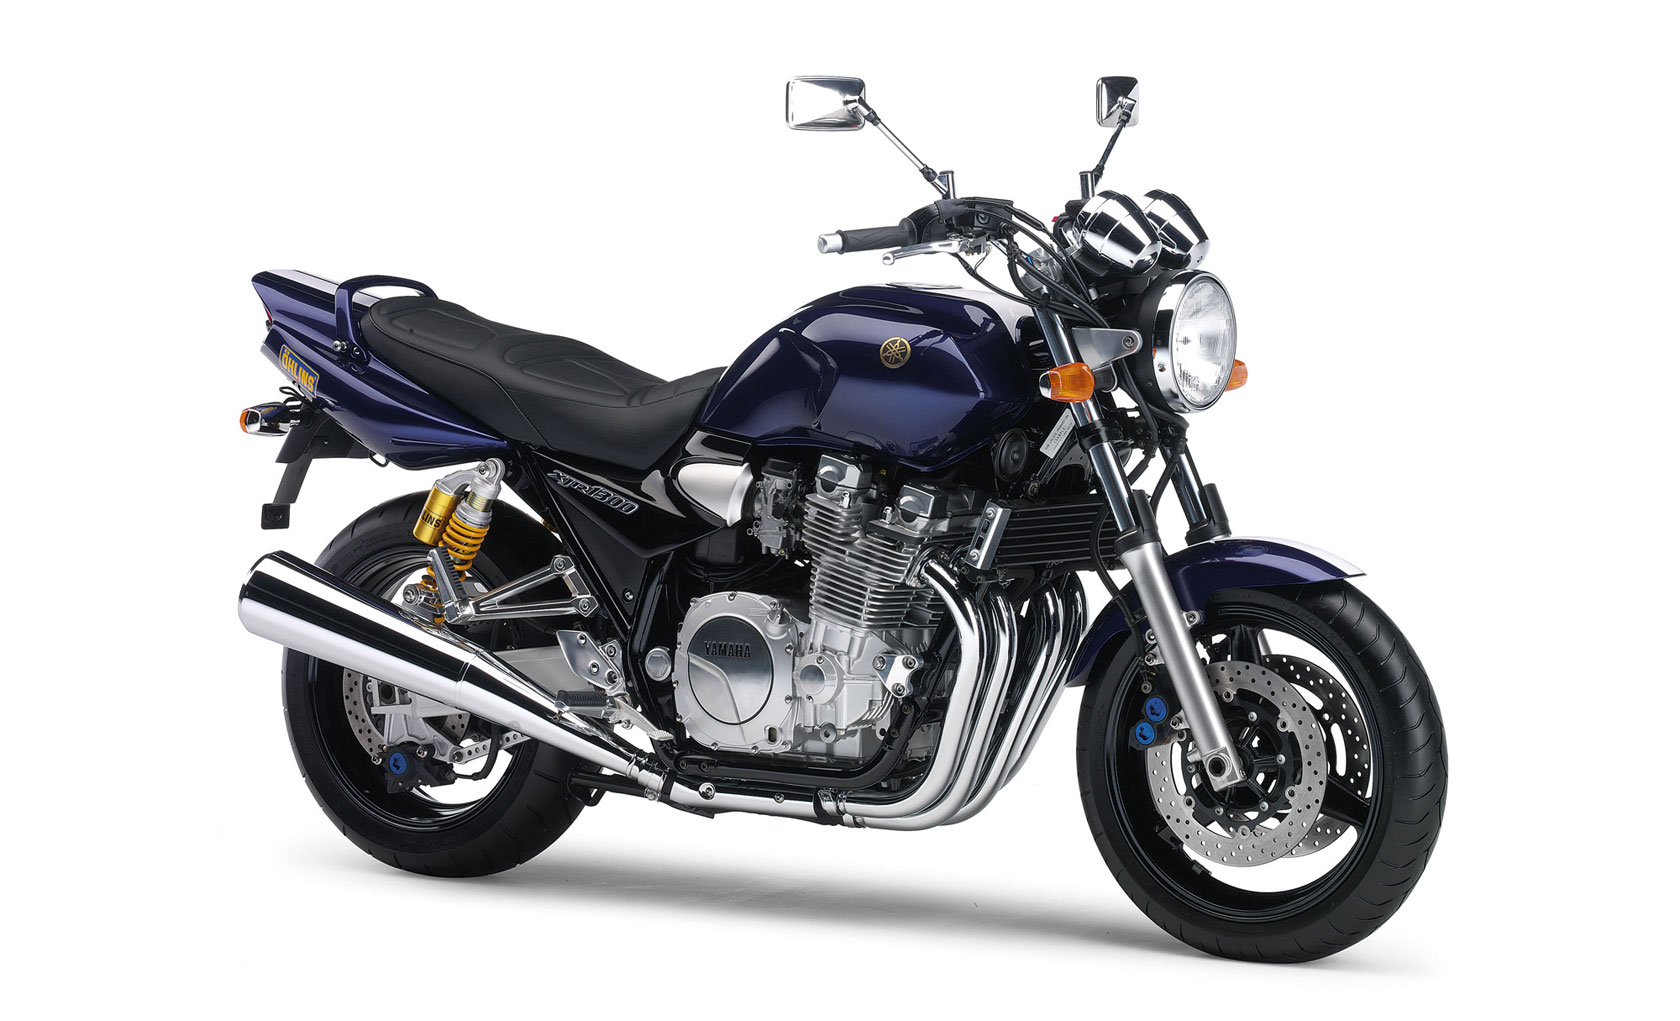 2004 to 2006 yamaha xjr1300 series model history timelines for Yamaha series a